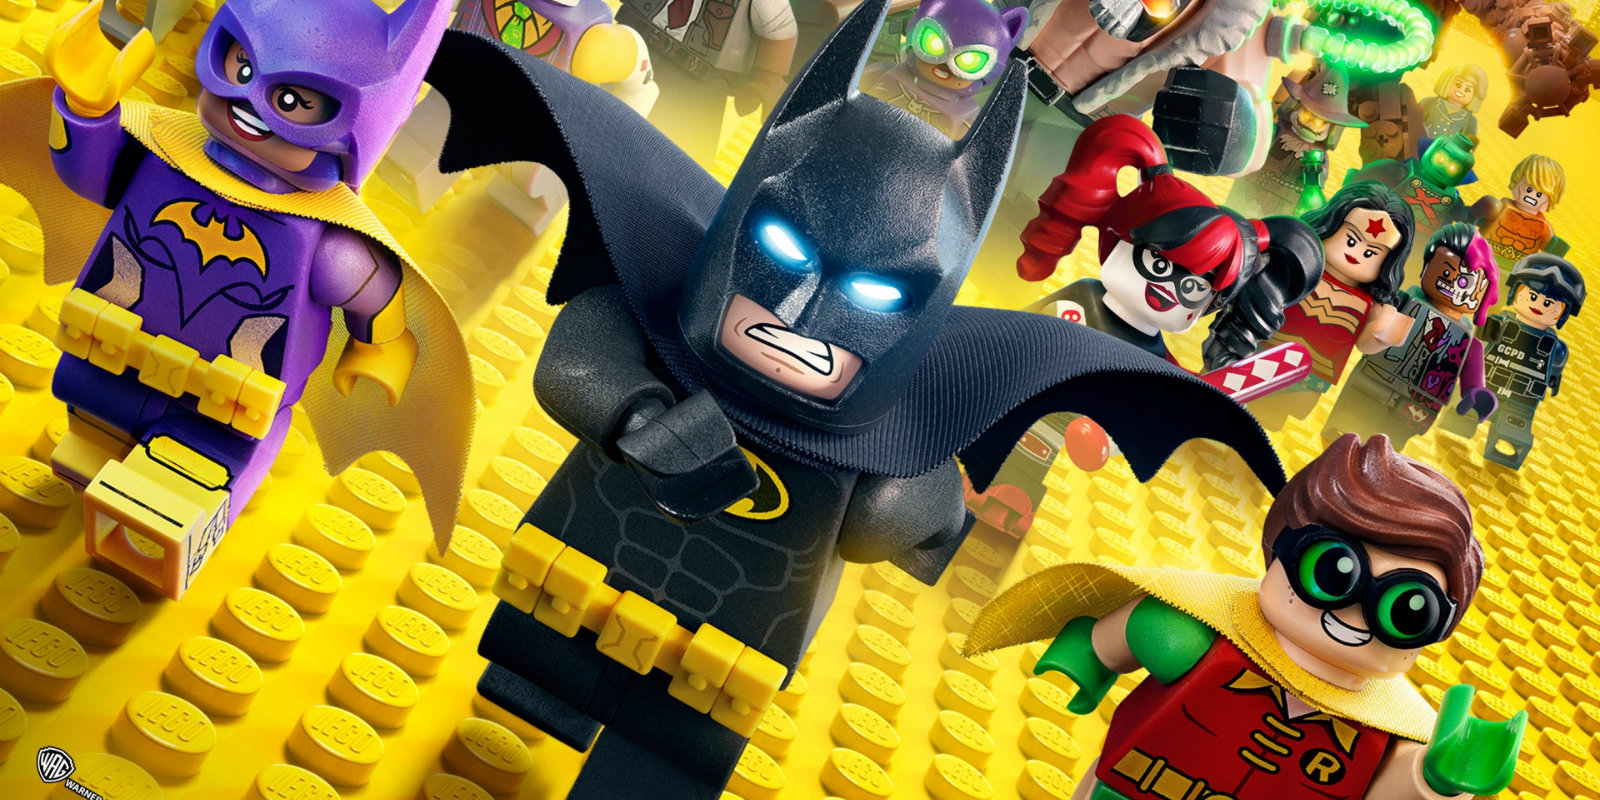 Saturday Morning Movie… and Make - The Lego Batman Movie